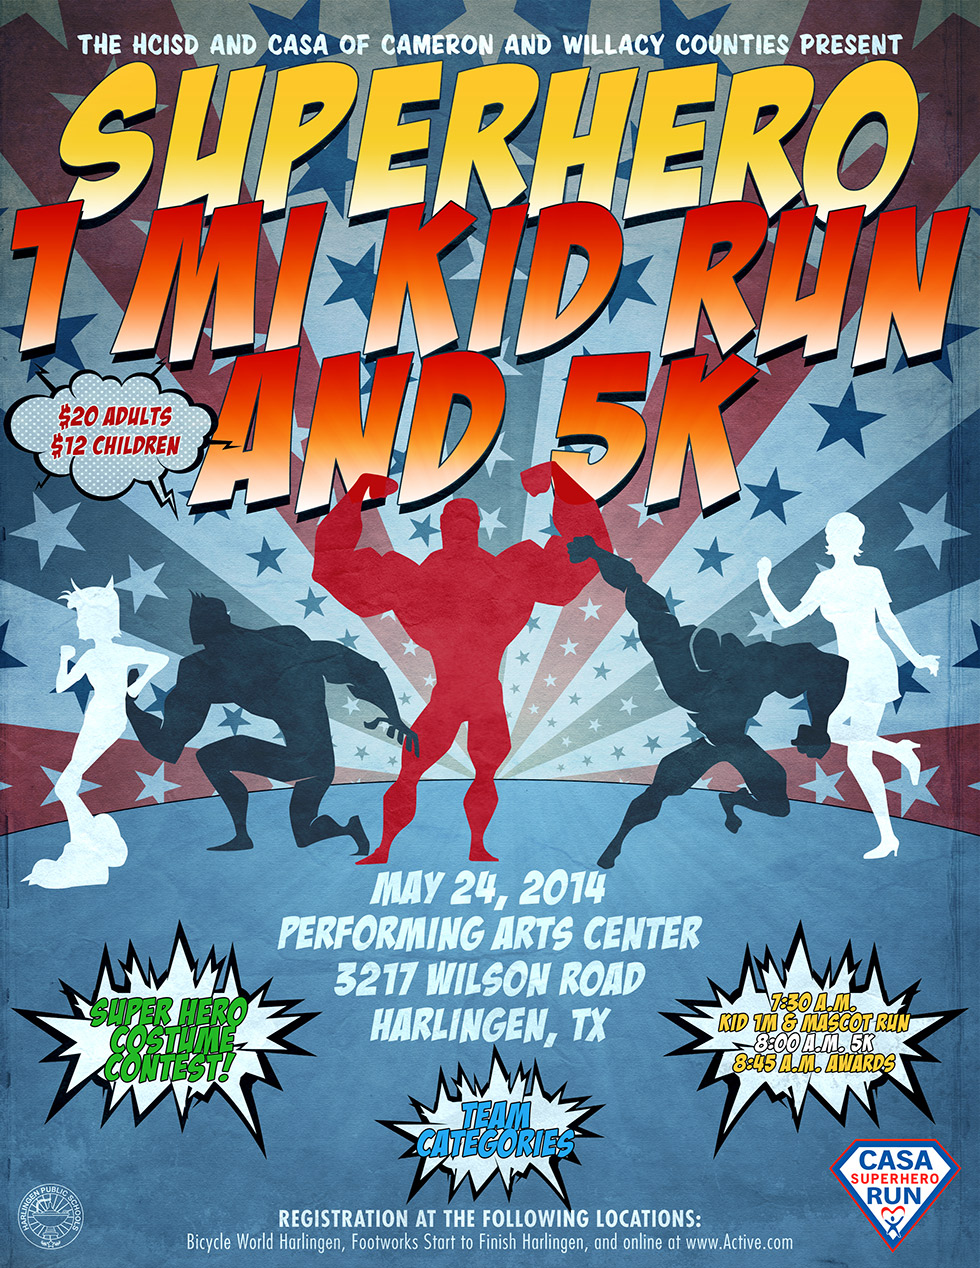 HCISD Invites community to Superhero 5K Run